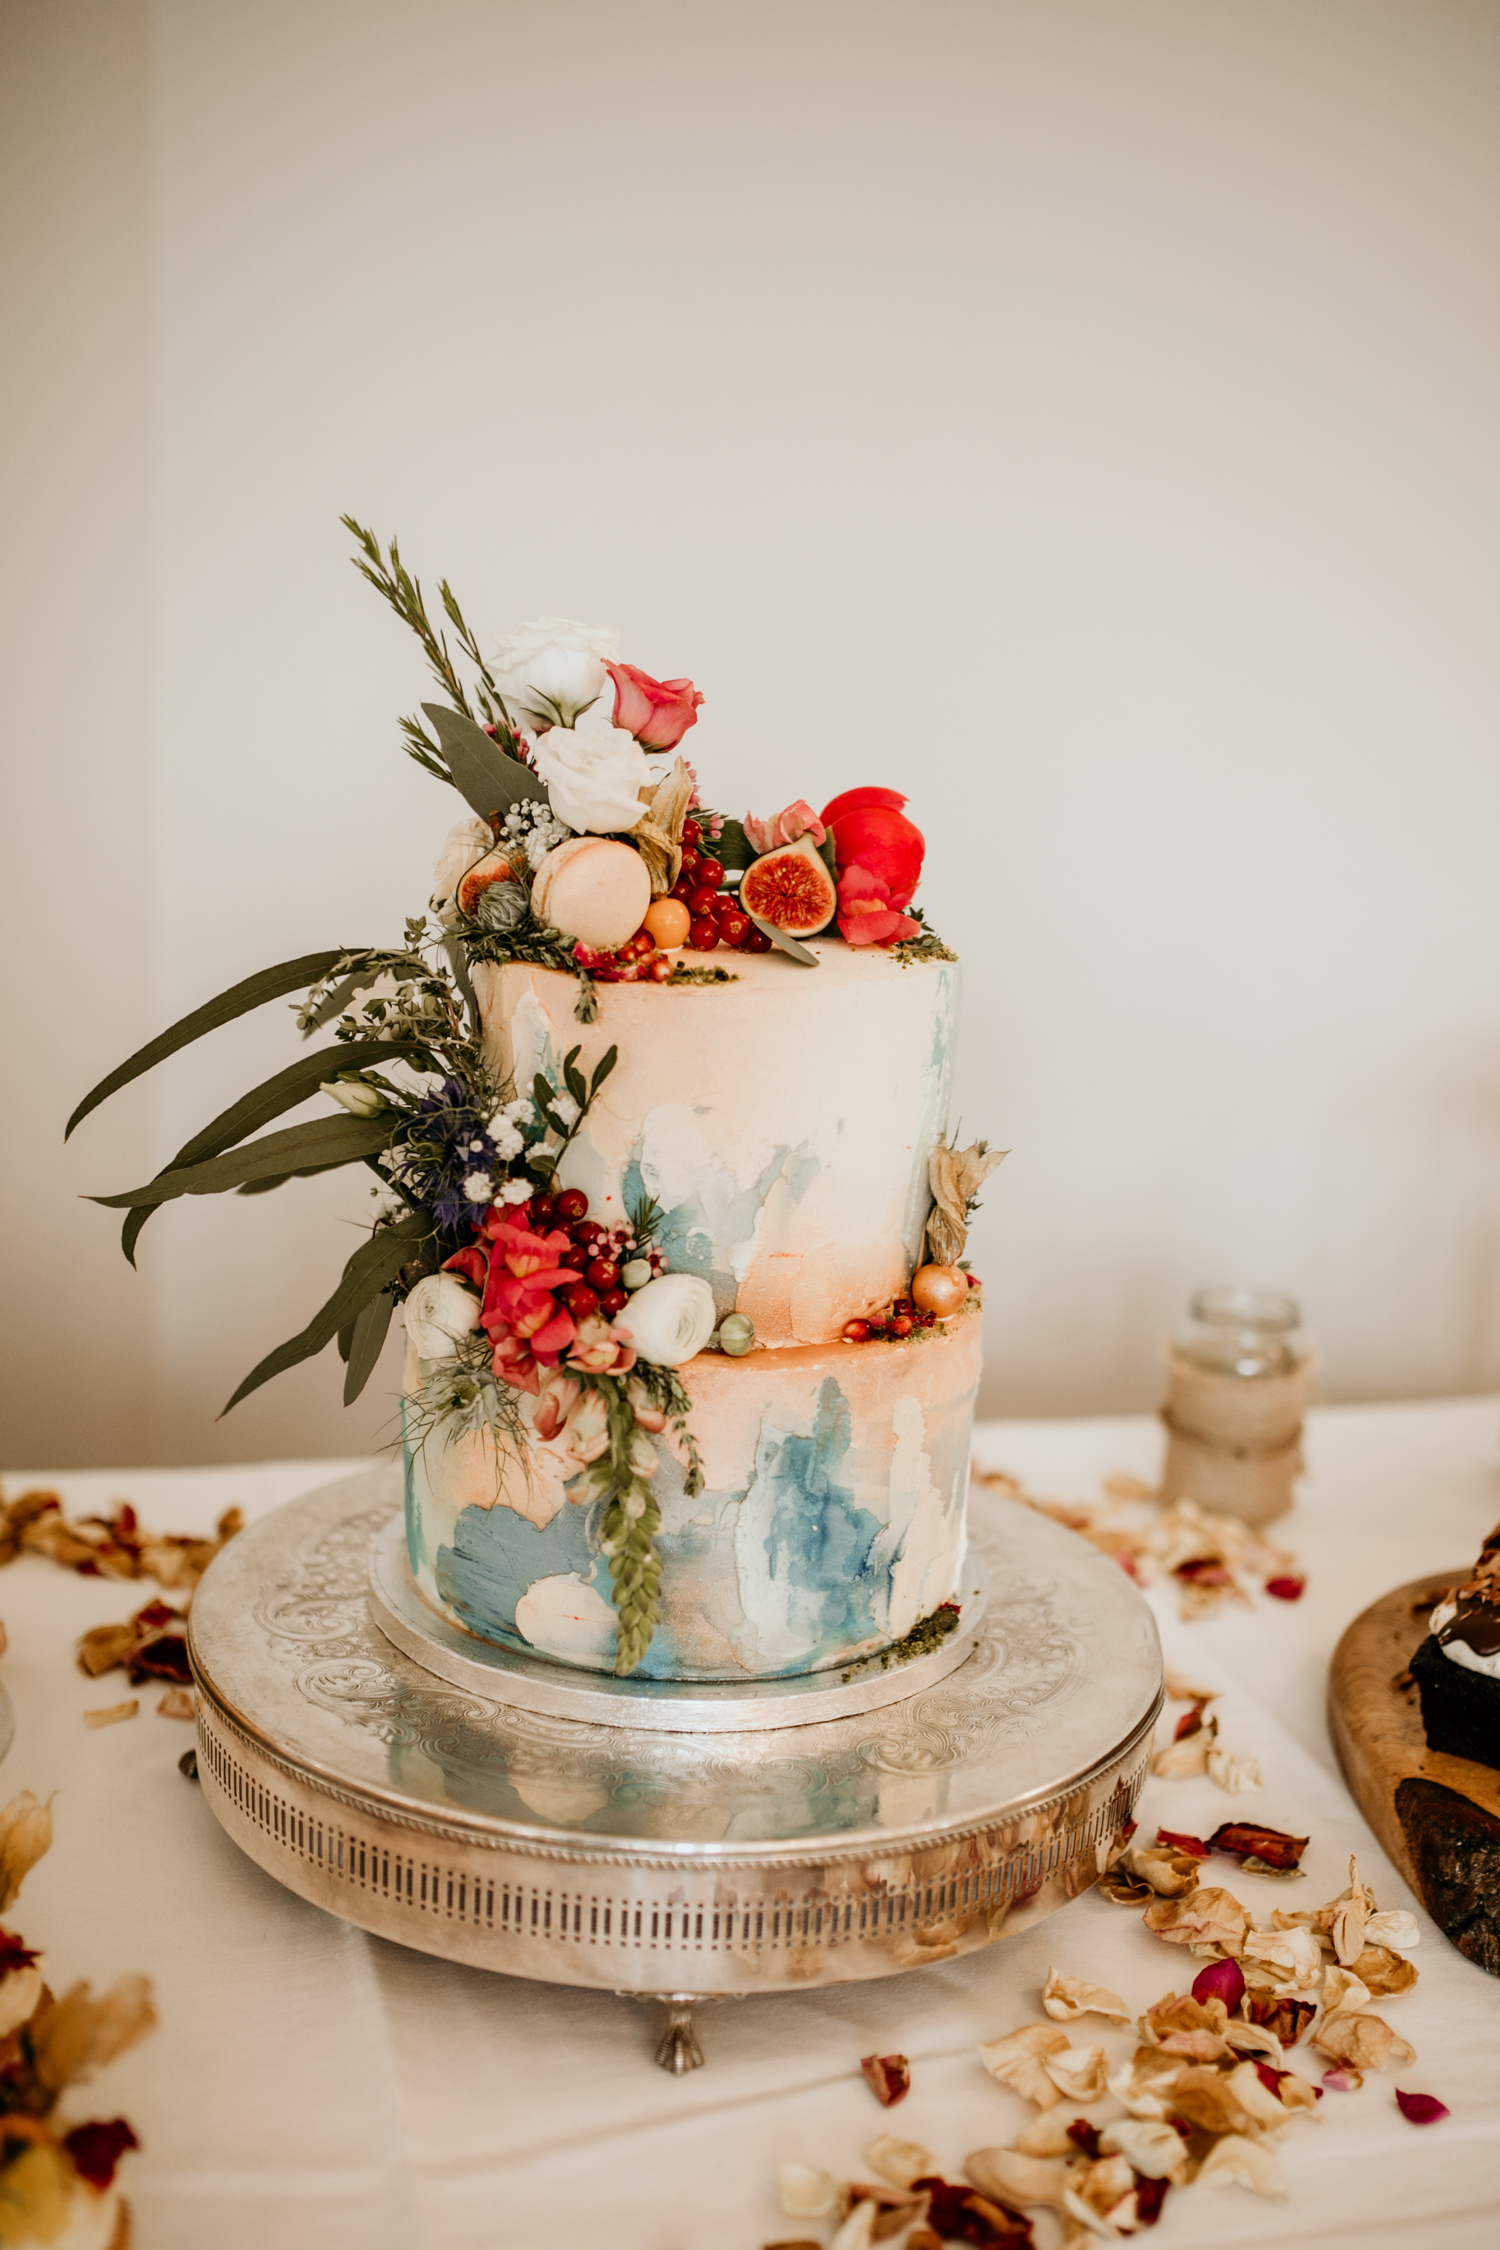 wedding cake during a Coombe Lodge Blagdon wedding reception